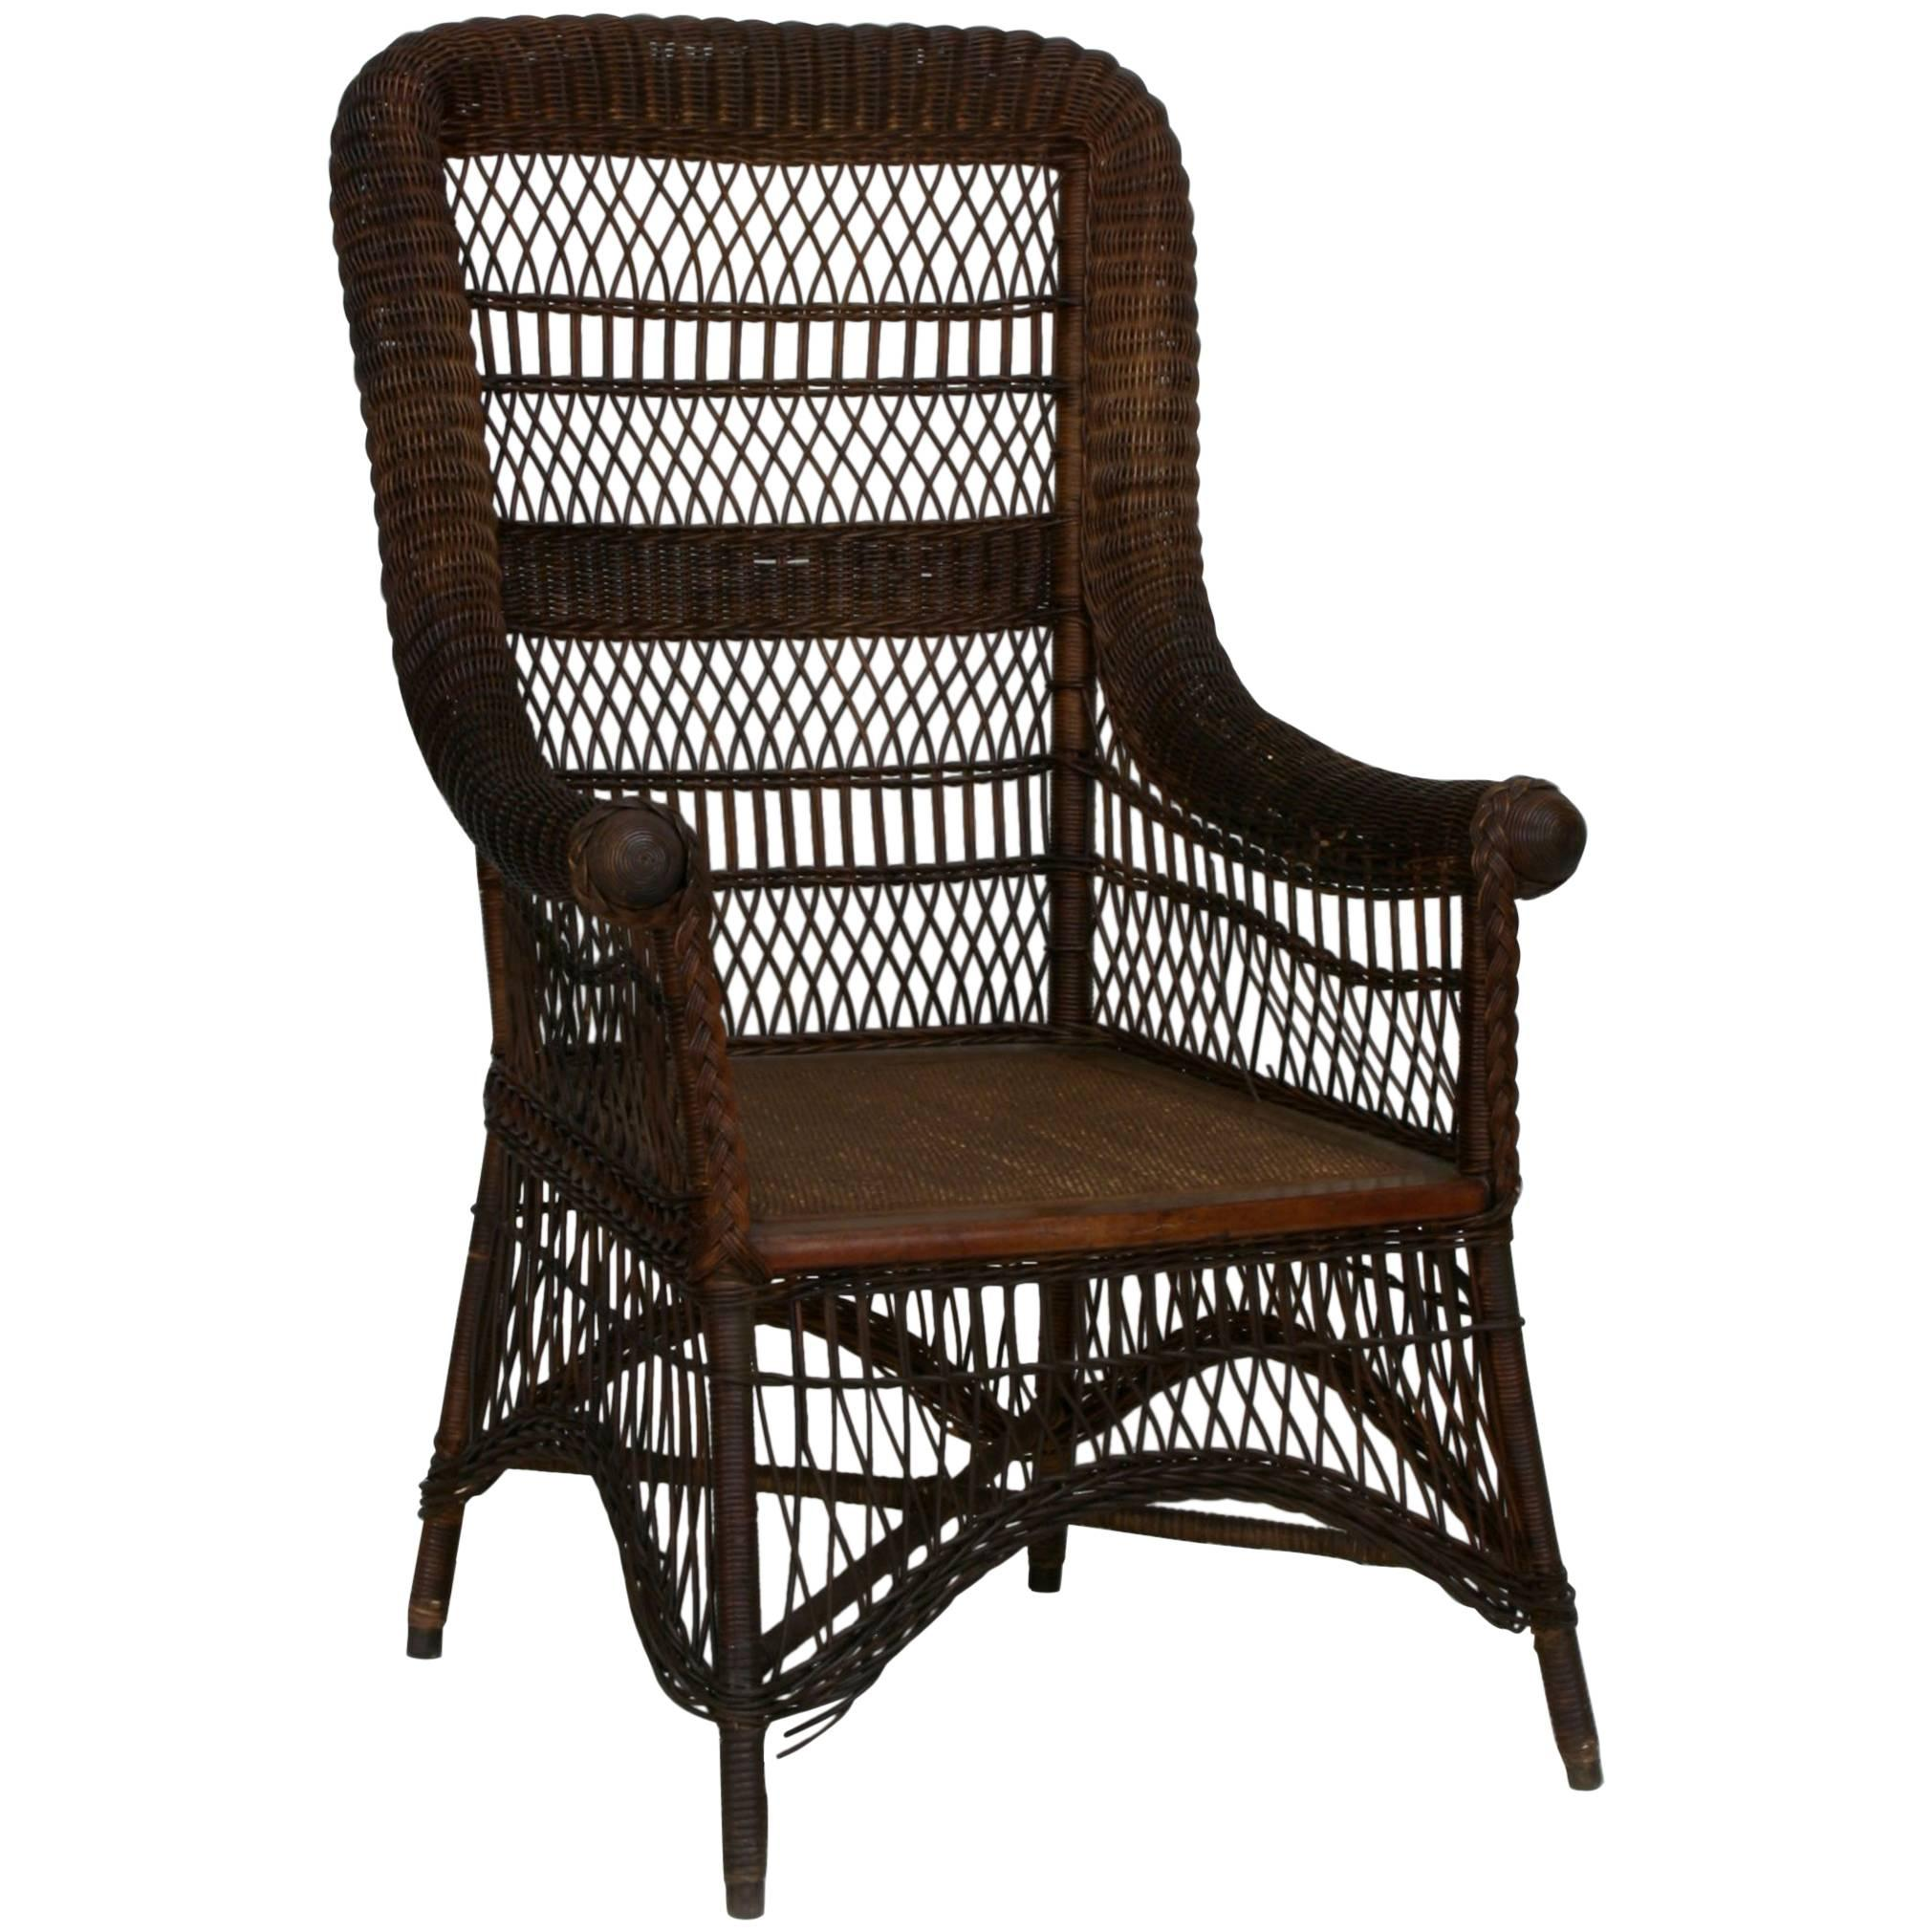 American Victorian Wicker Arm Chair